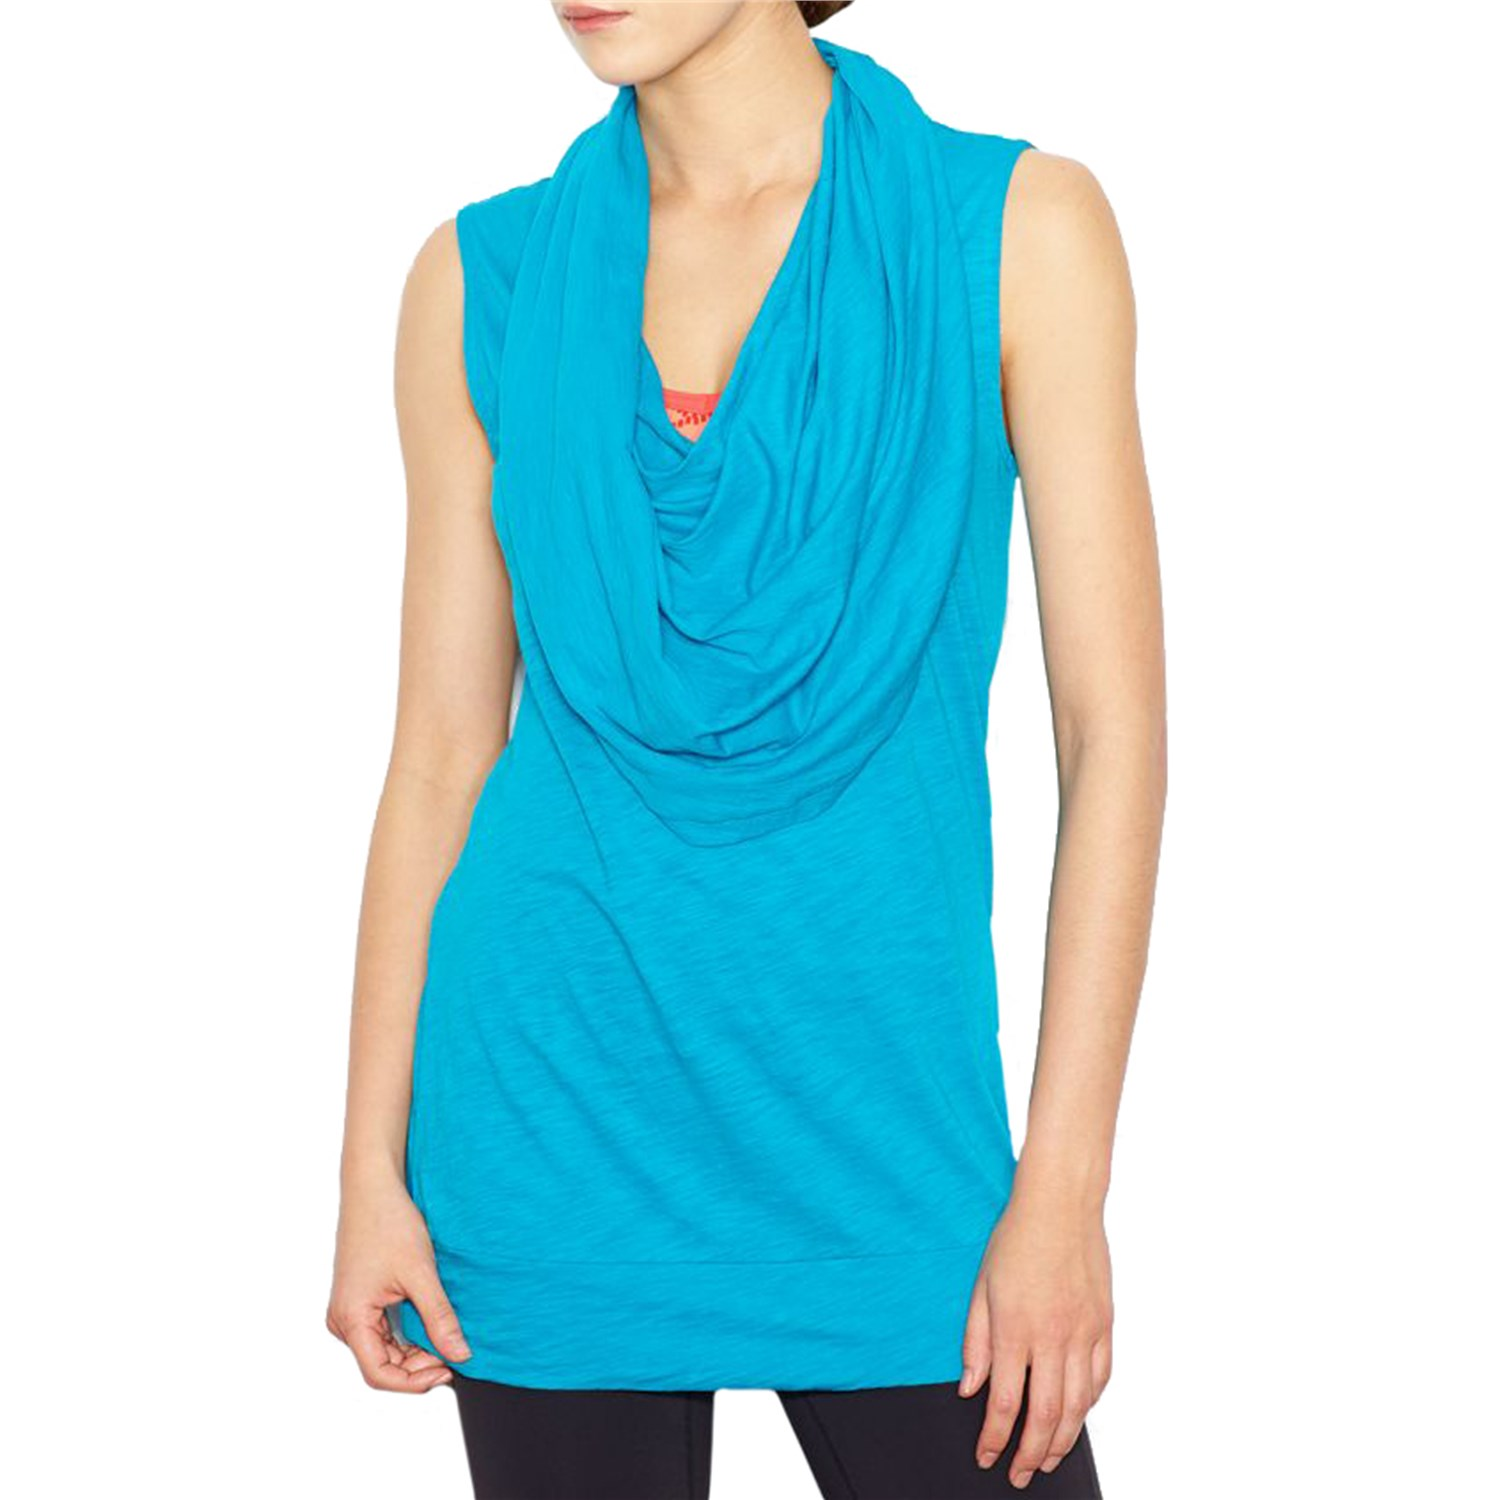 Shop cute women's tunics at up to 70% off on zulily. Find the perfect tunic from Apparel, Home & More · New Events Every Day · Hurry, Limited Inventory · New Deals Every Day57,+ followers on Twitter.